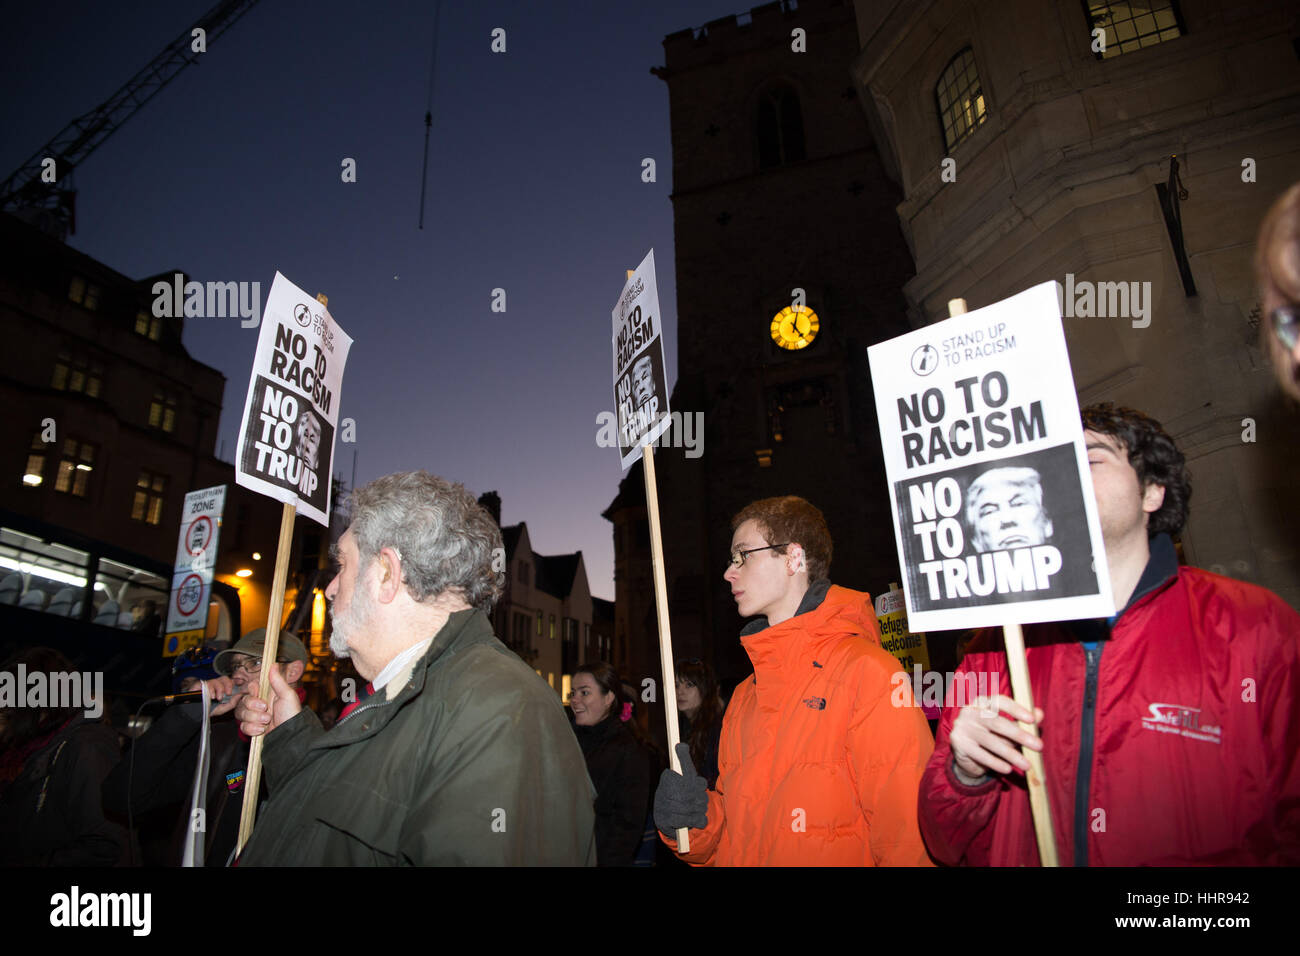 Oxford, UK. 20th January 2017. Anti Trump protesters gathered in front of Carfax Tower in the city to denounce America's - Stock Image